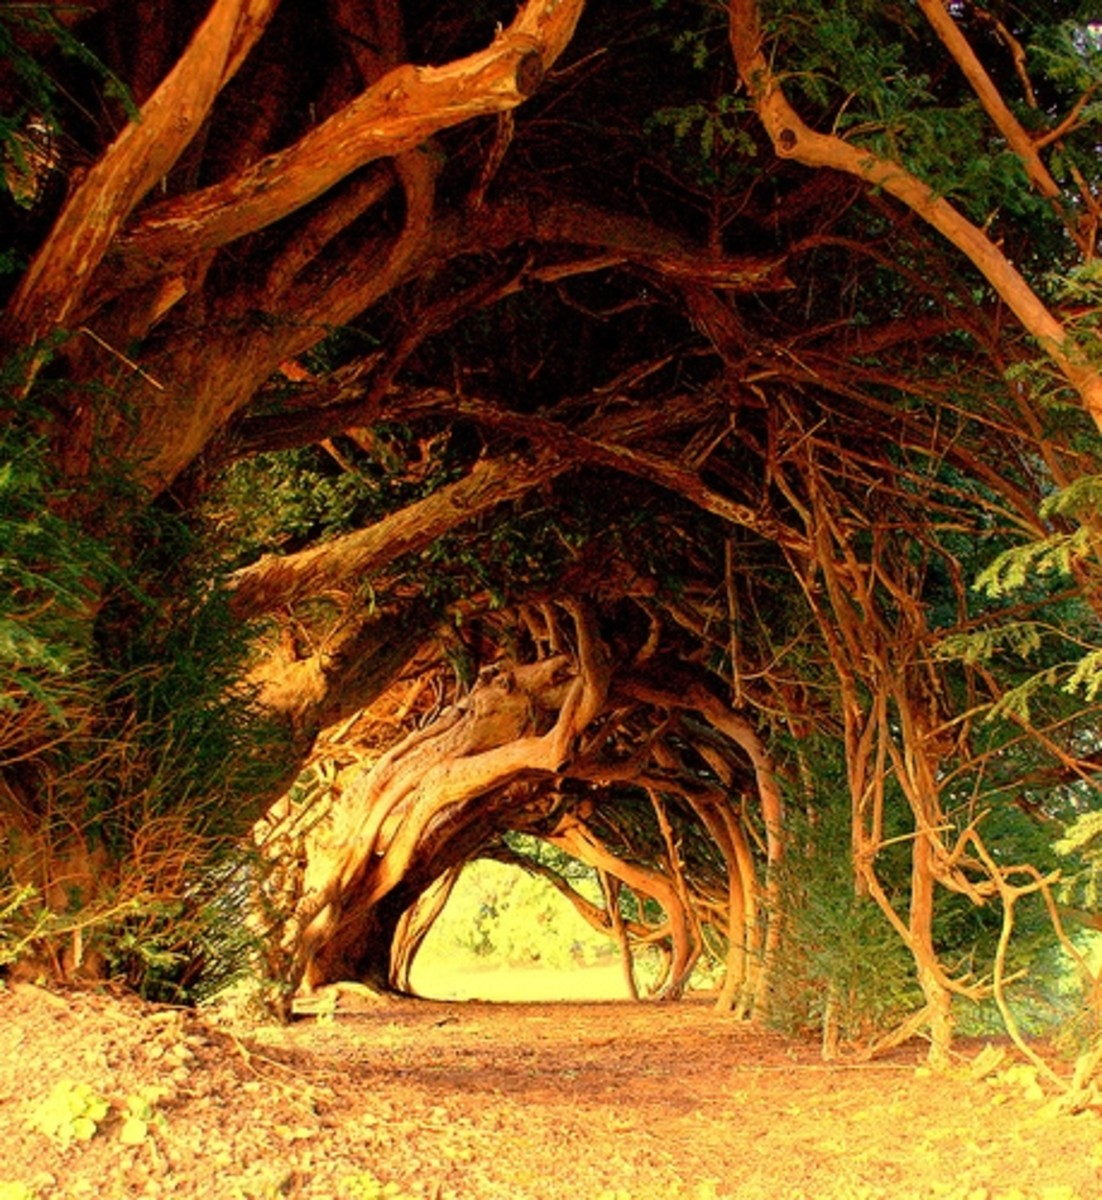 A 1,000-year old yew somewhere in England. Ever wondered what the yew has to do with the Church? We have them in church-yards and cemeteries. Your average druid would be happy with that, your vicar would just turn a blind eye...